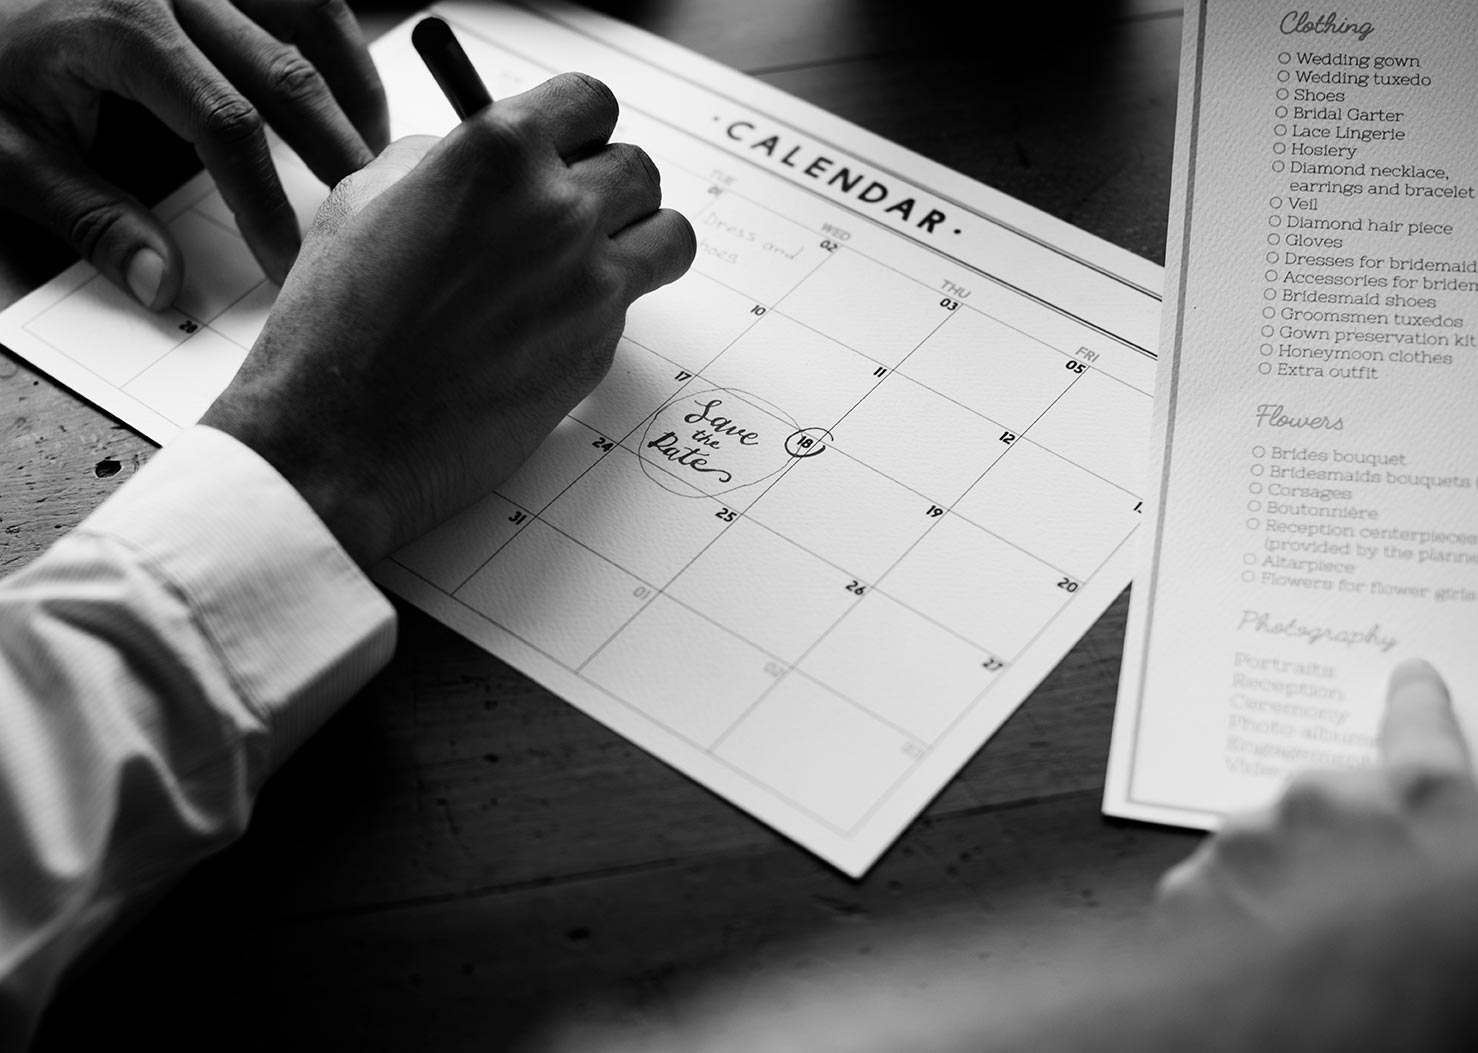 Useful Groom's Calendar to help you stay on track for your wedding